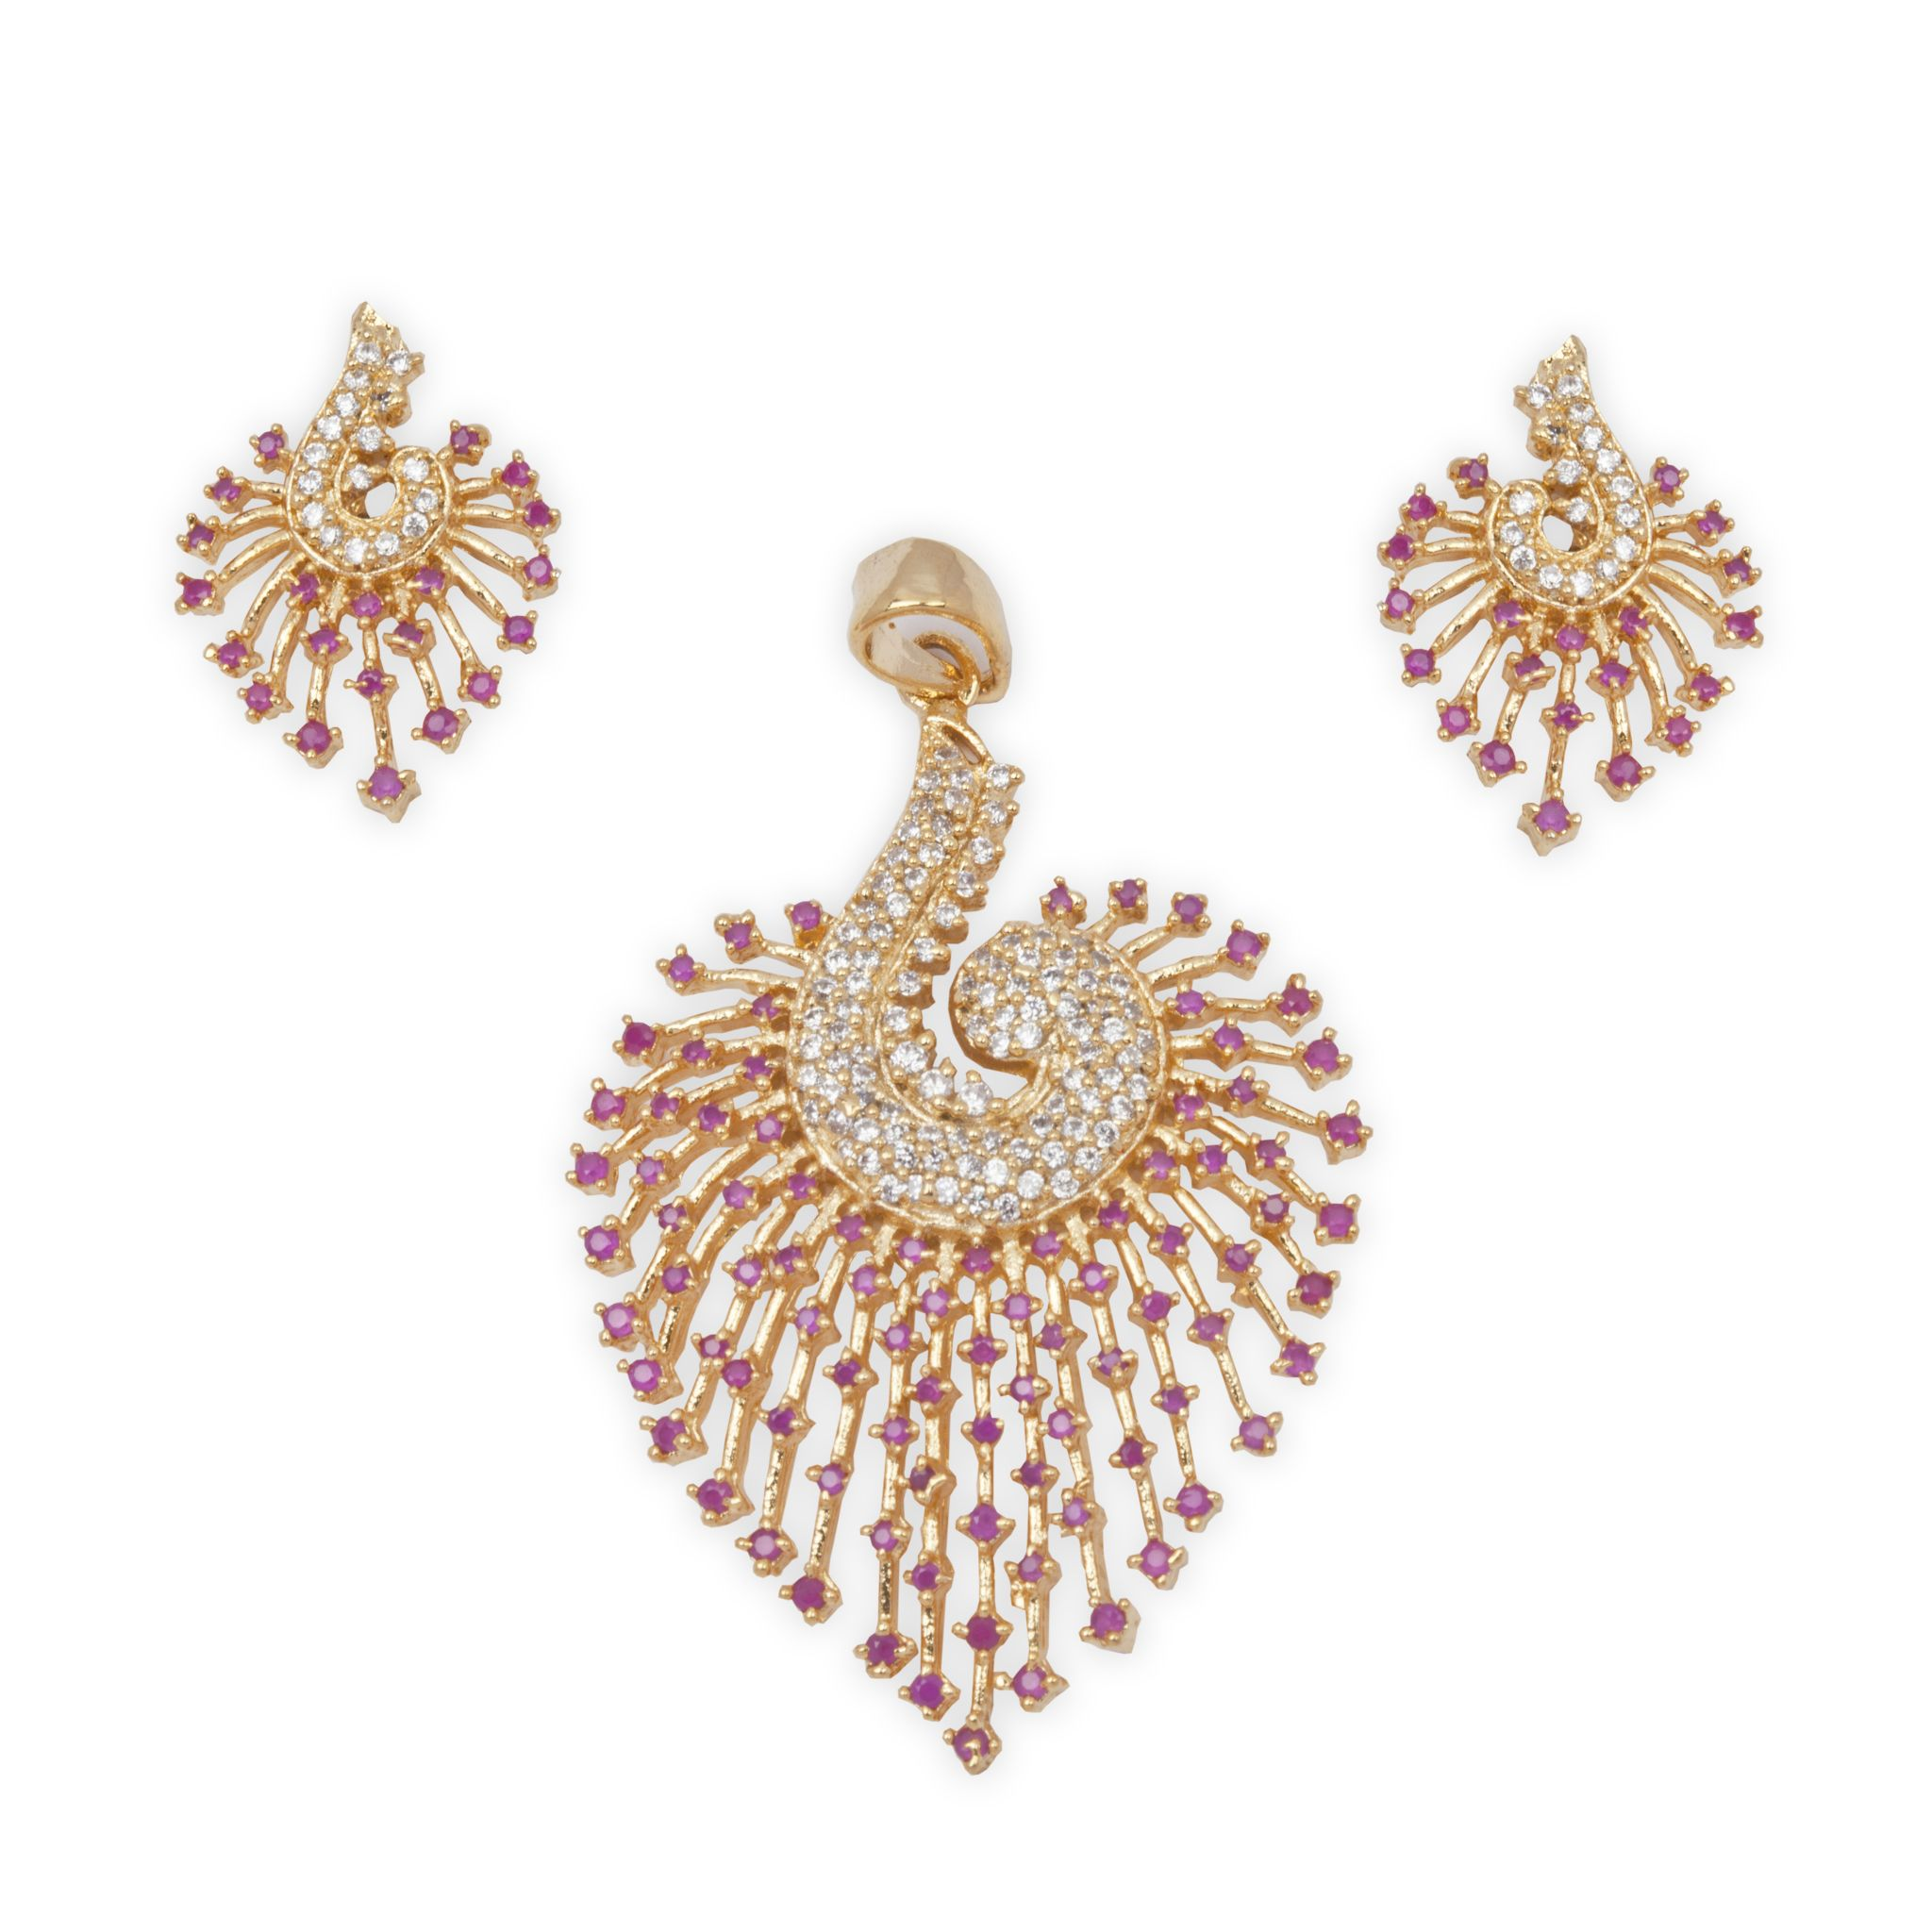 The Beautifully Designed Peacock design with Cubic Zircon and Ruby Stones